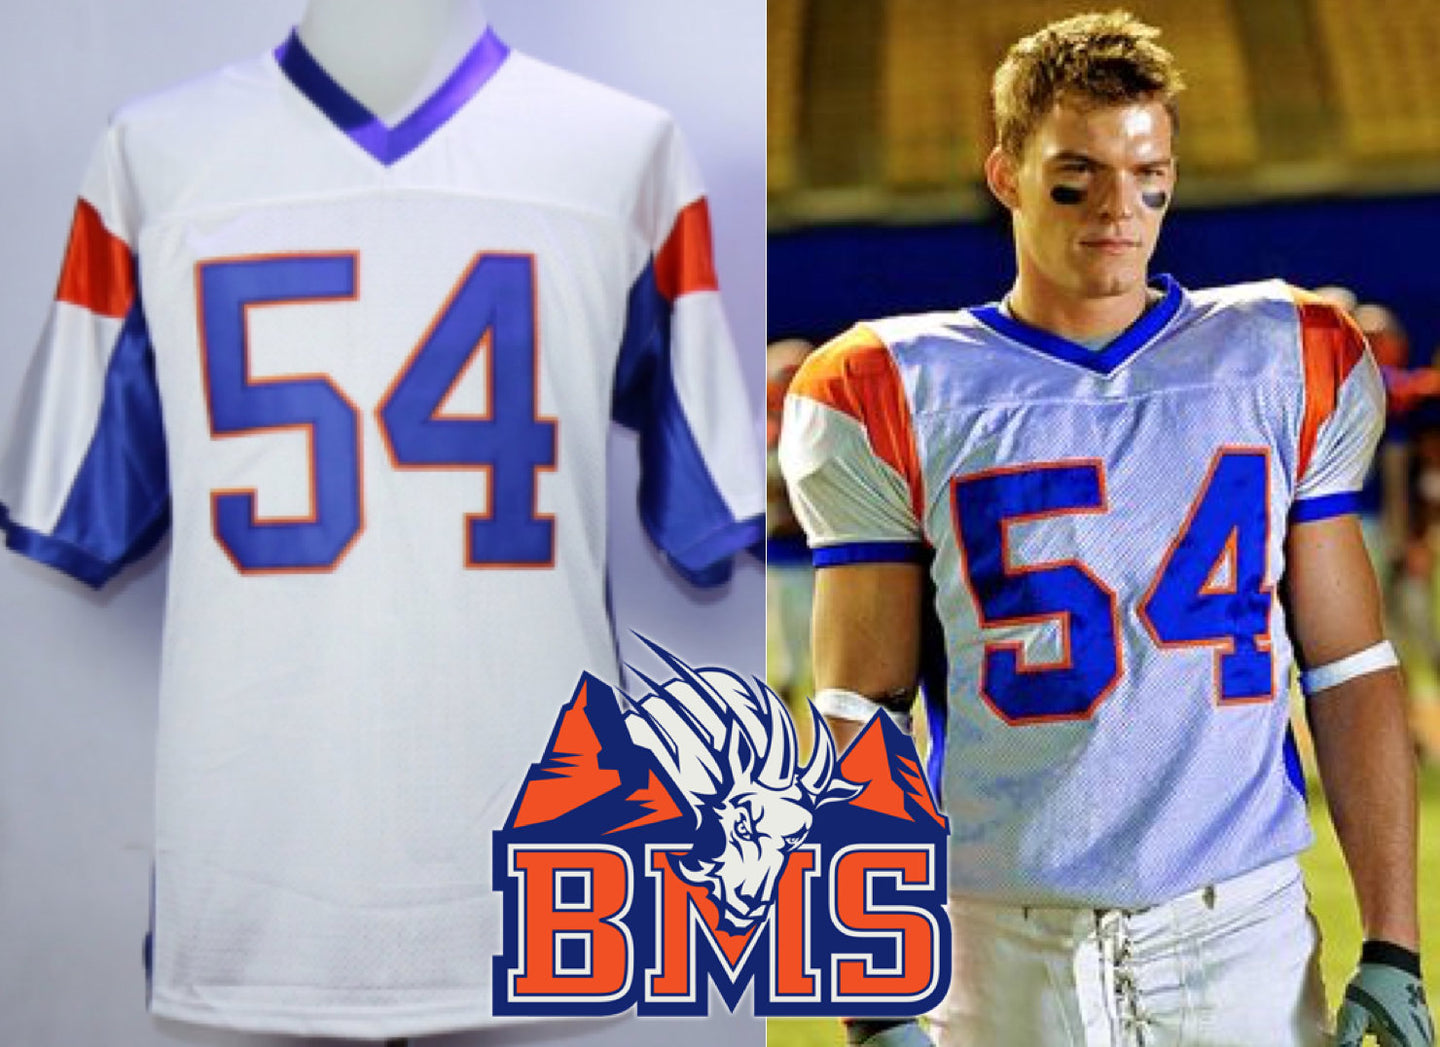 Thad Castle Blue Mountain State (BMS) TV #54 Football Jersey Custom Throwback Retro TV Show Jersey